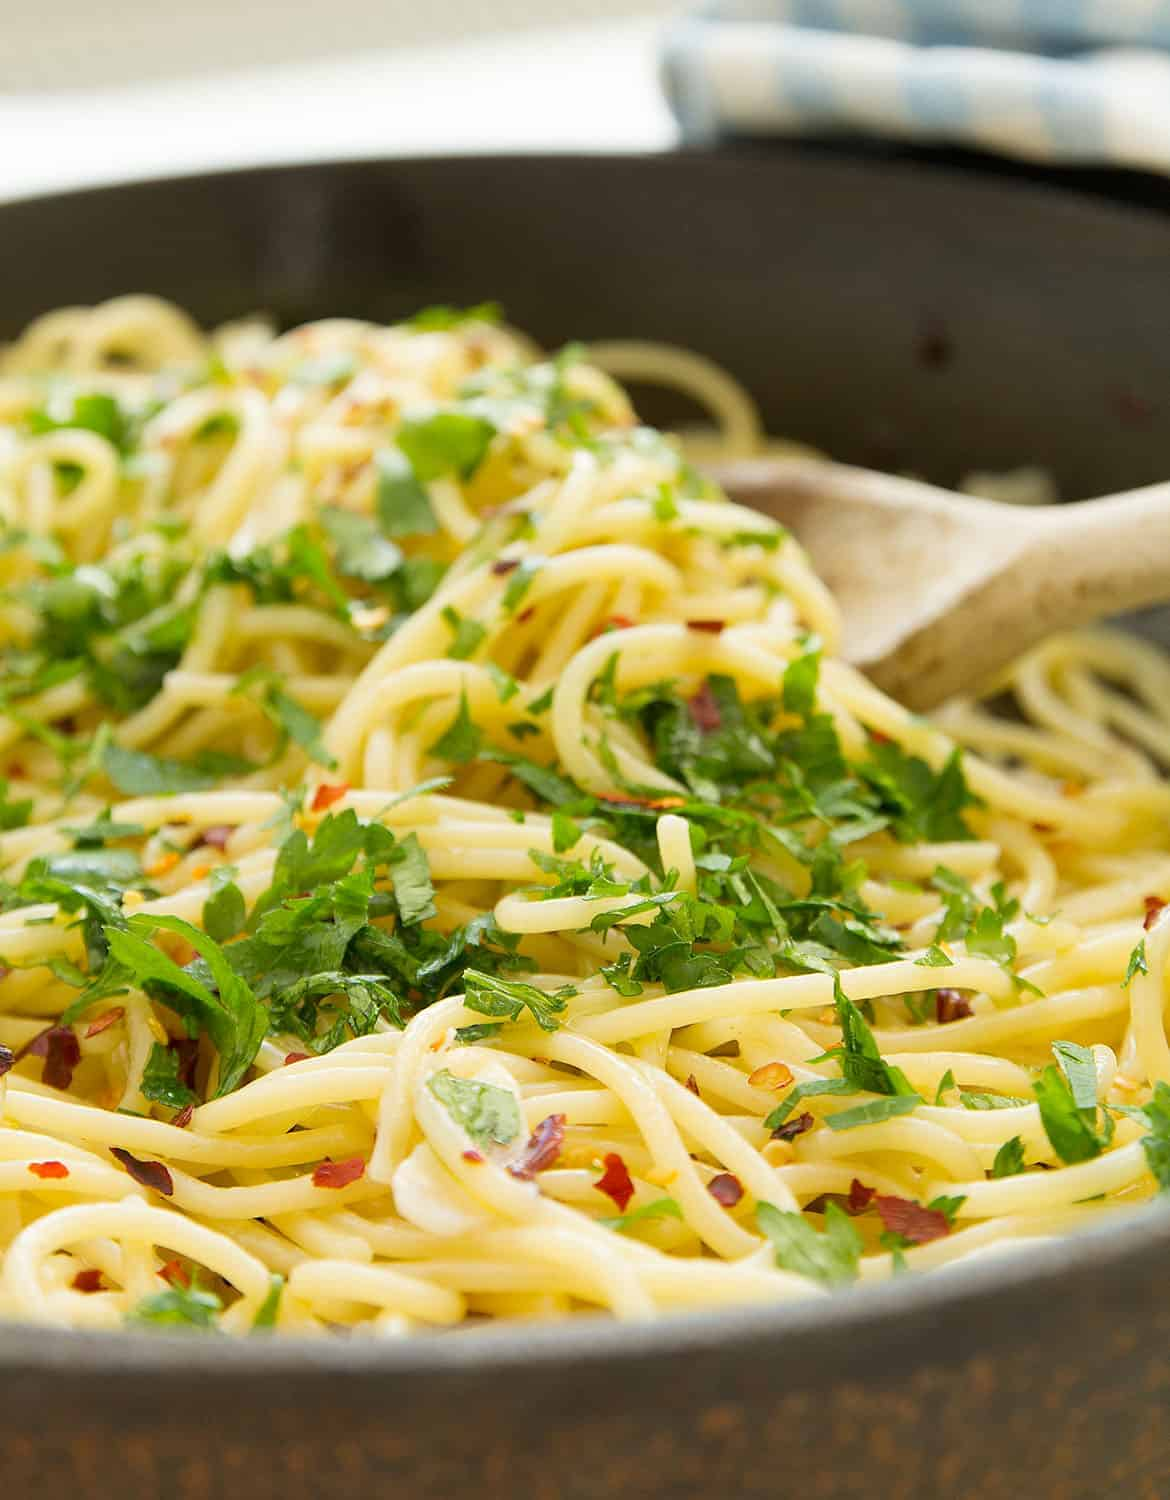 A wooden spoon is stirring spaghetti aglio e olio in a cast iron skillet.